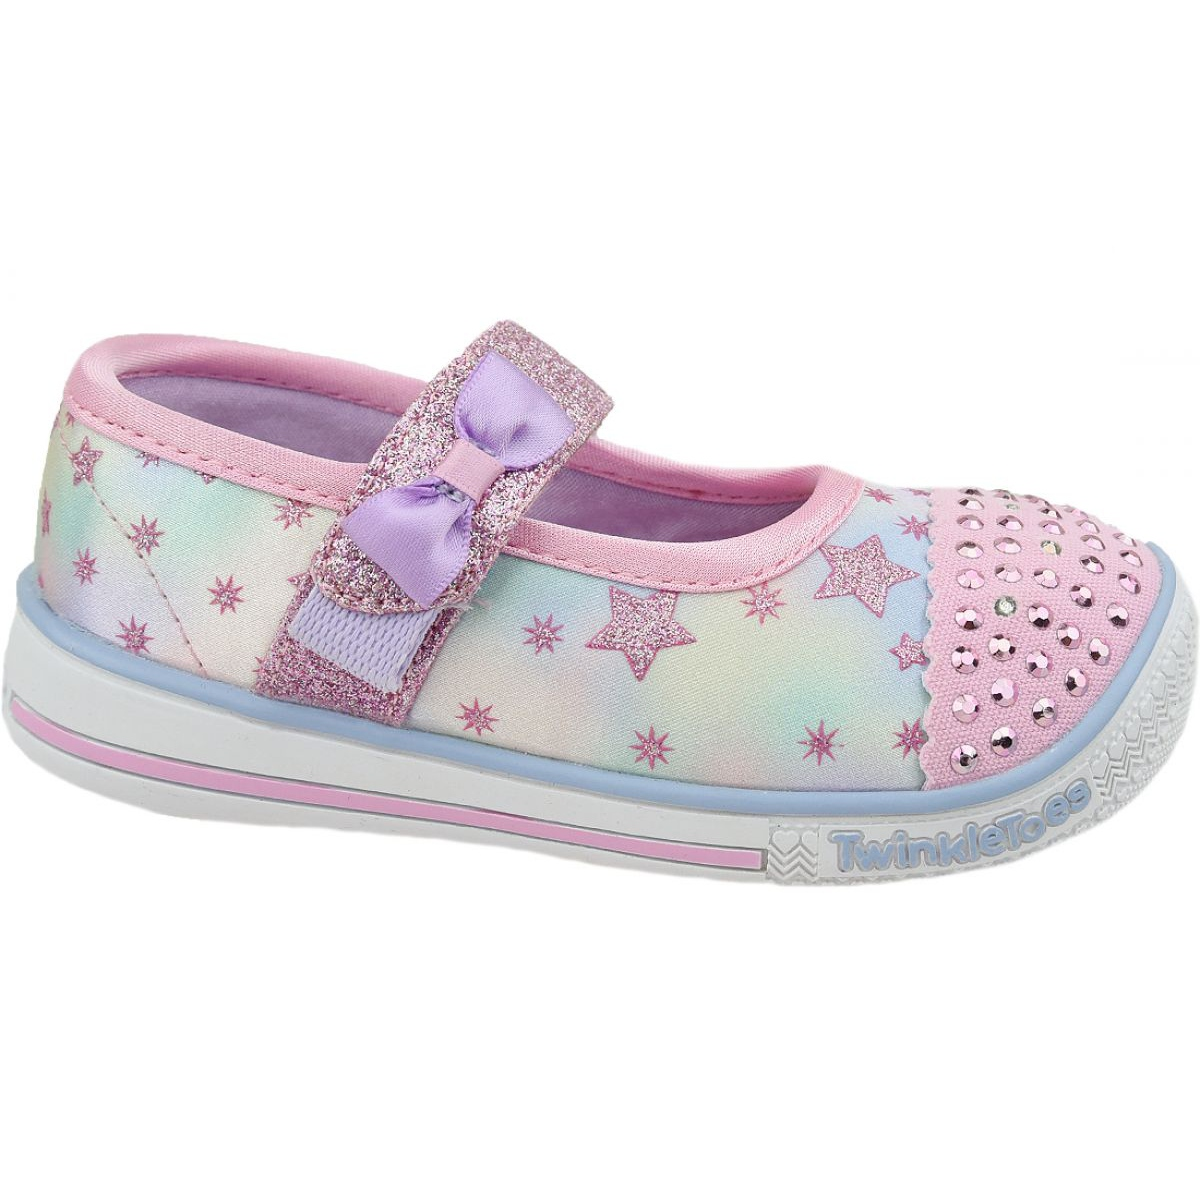 skechers multi colored shoes